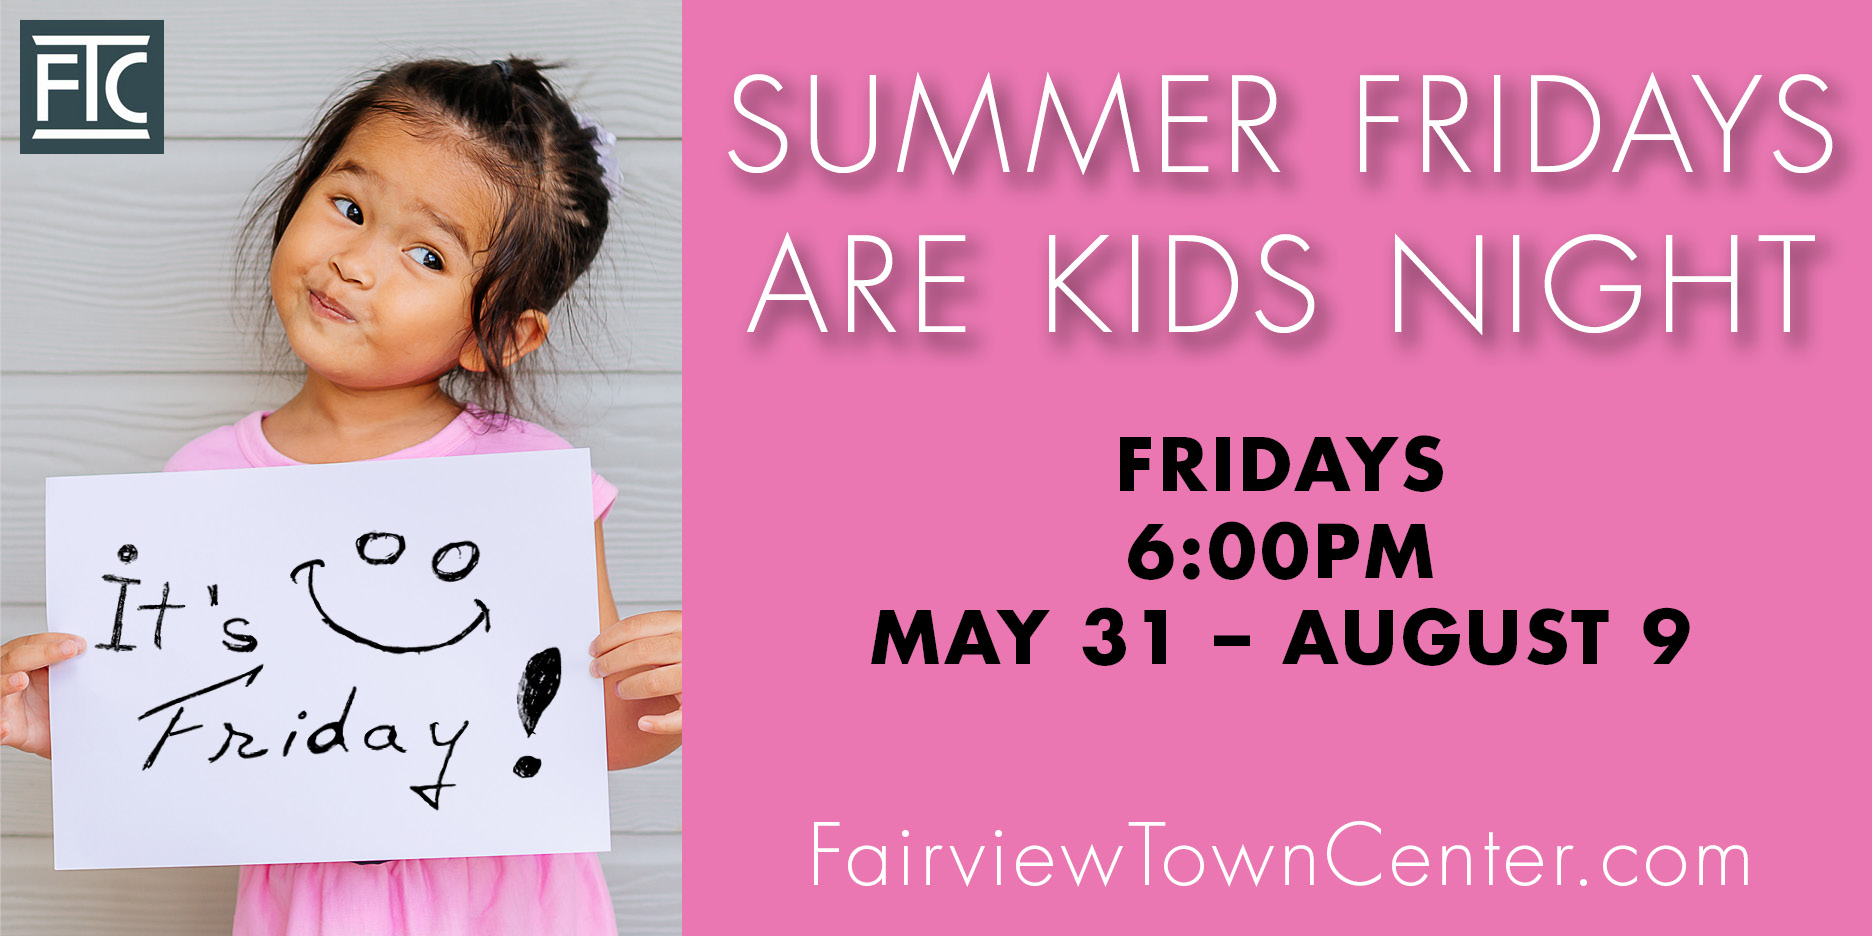 Summer Fridays Are Kids Night LED Display Ad